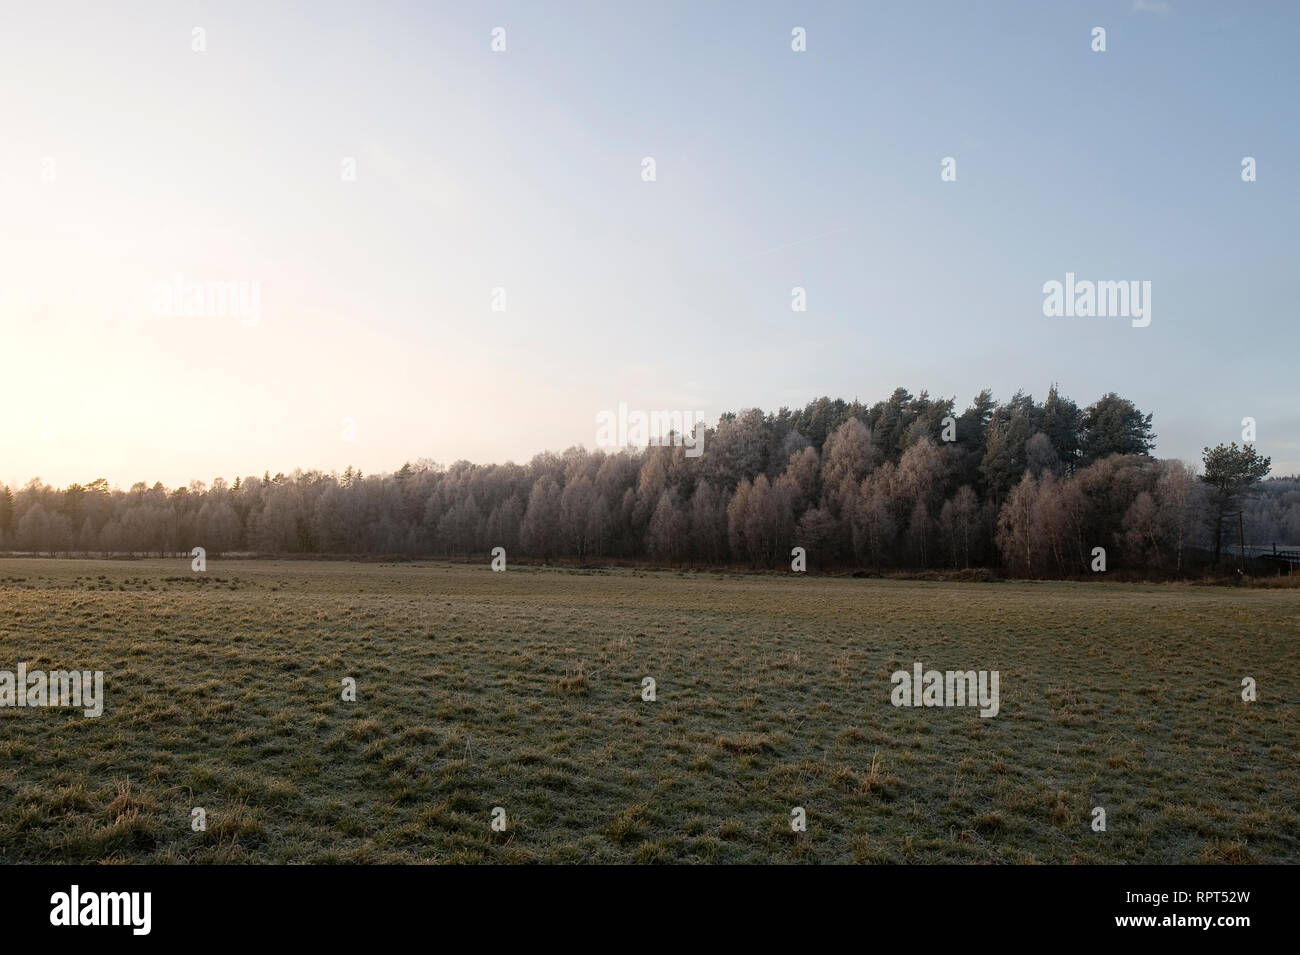 SWEDEN, Fog is a visible aerosol consisting of tiny water droplets or ice crystals suspended in the air at or near the Earth's surface.[1] Fog can be - Stock Image